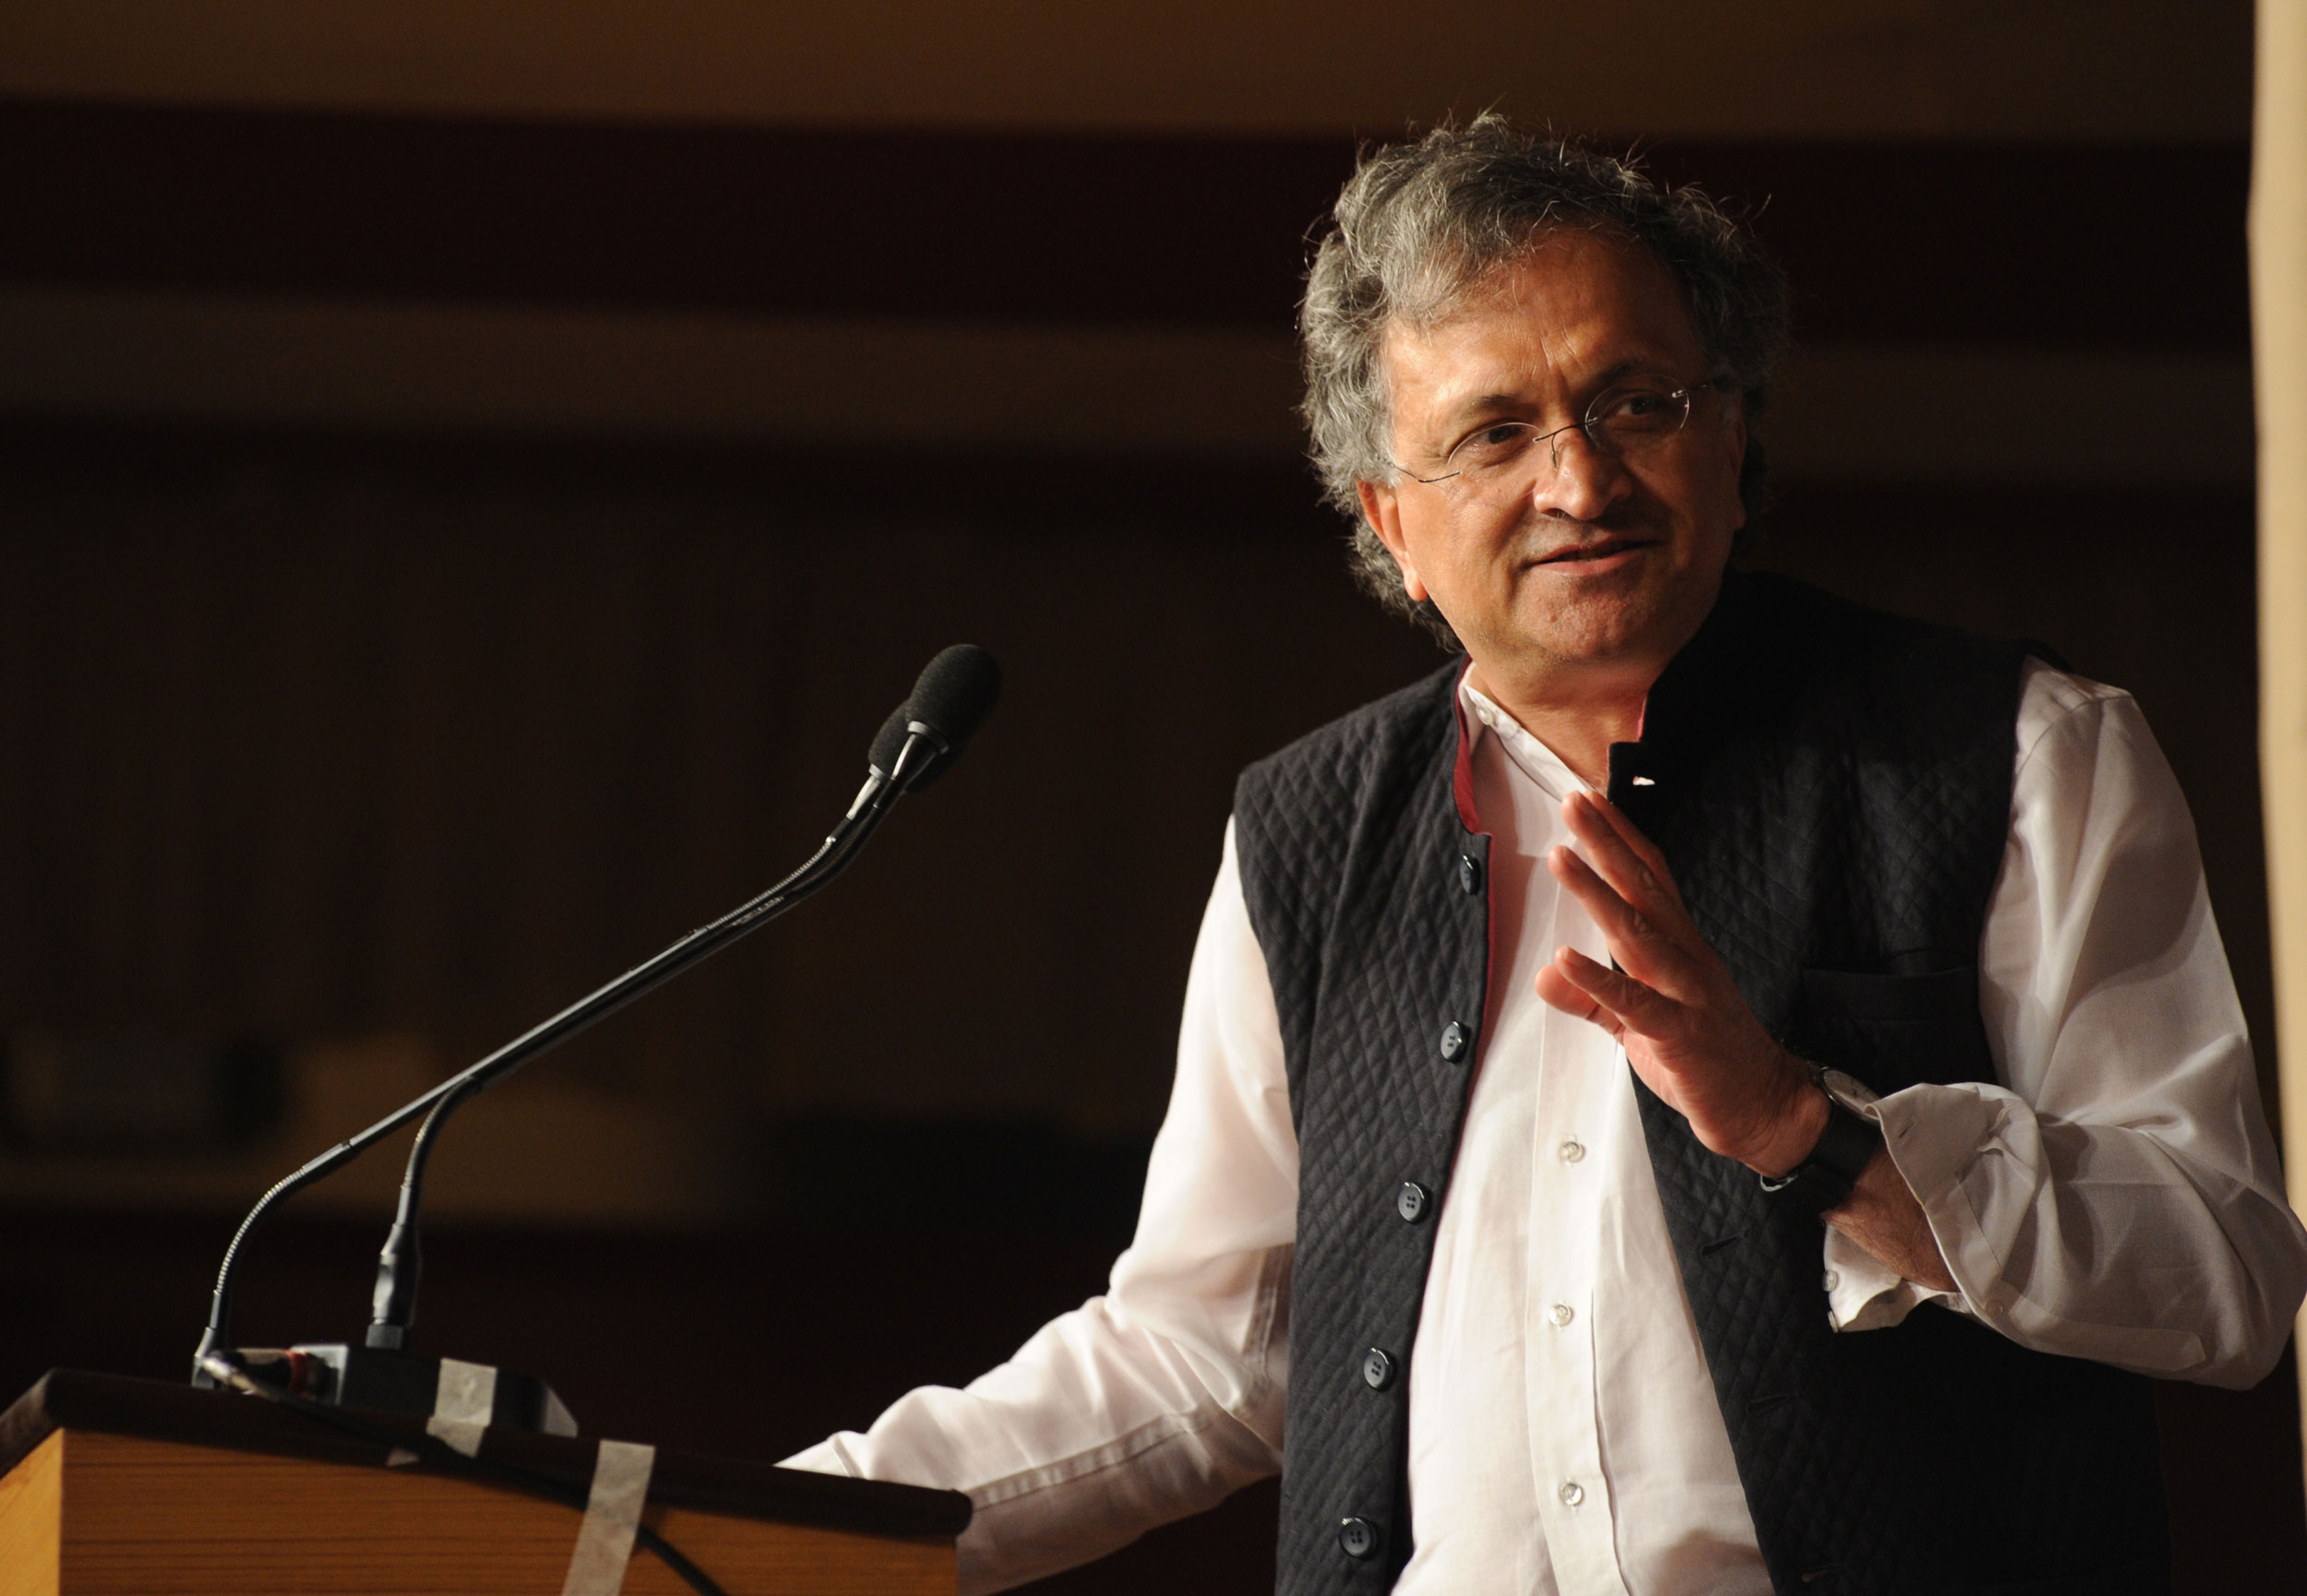 Ramachandra Guha, one of the signatories